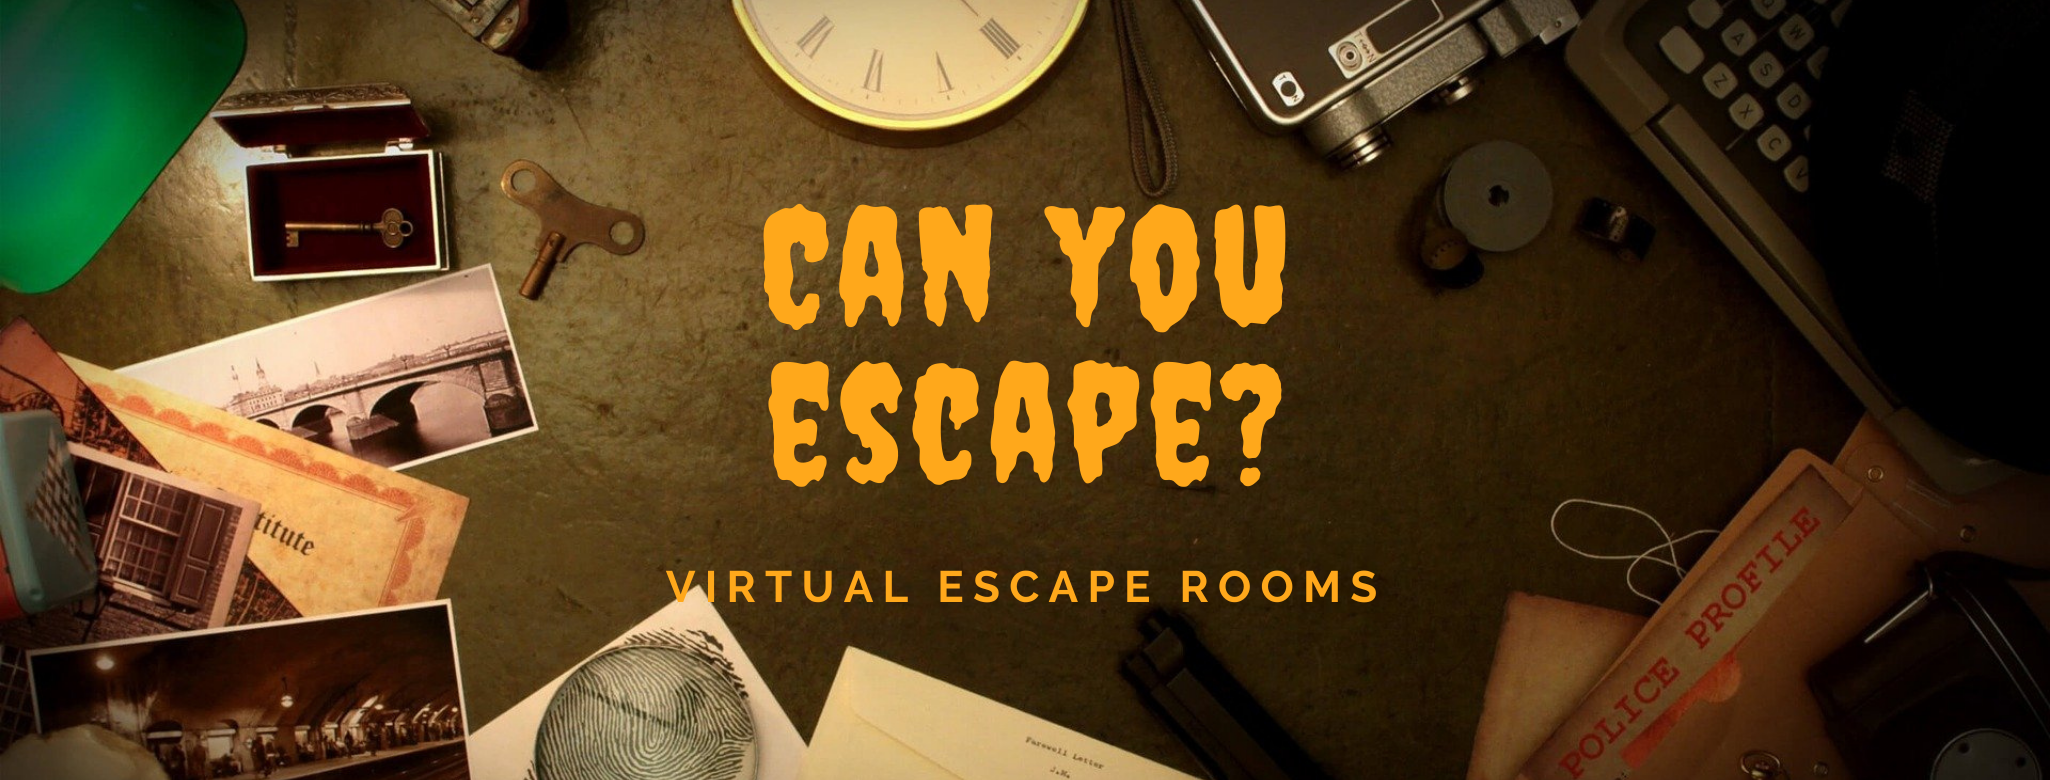 Virtual Escape Rooms